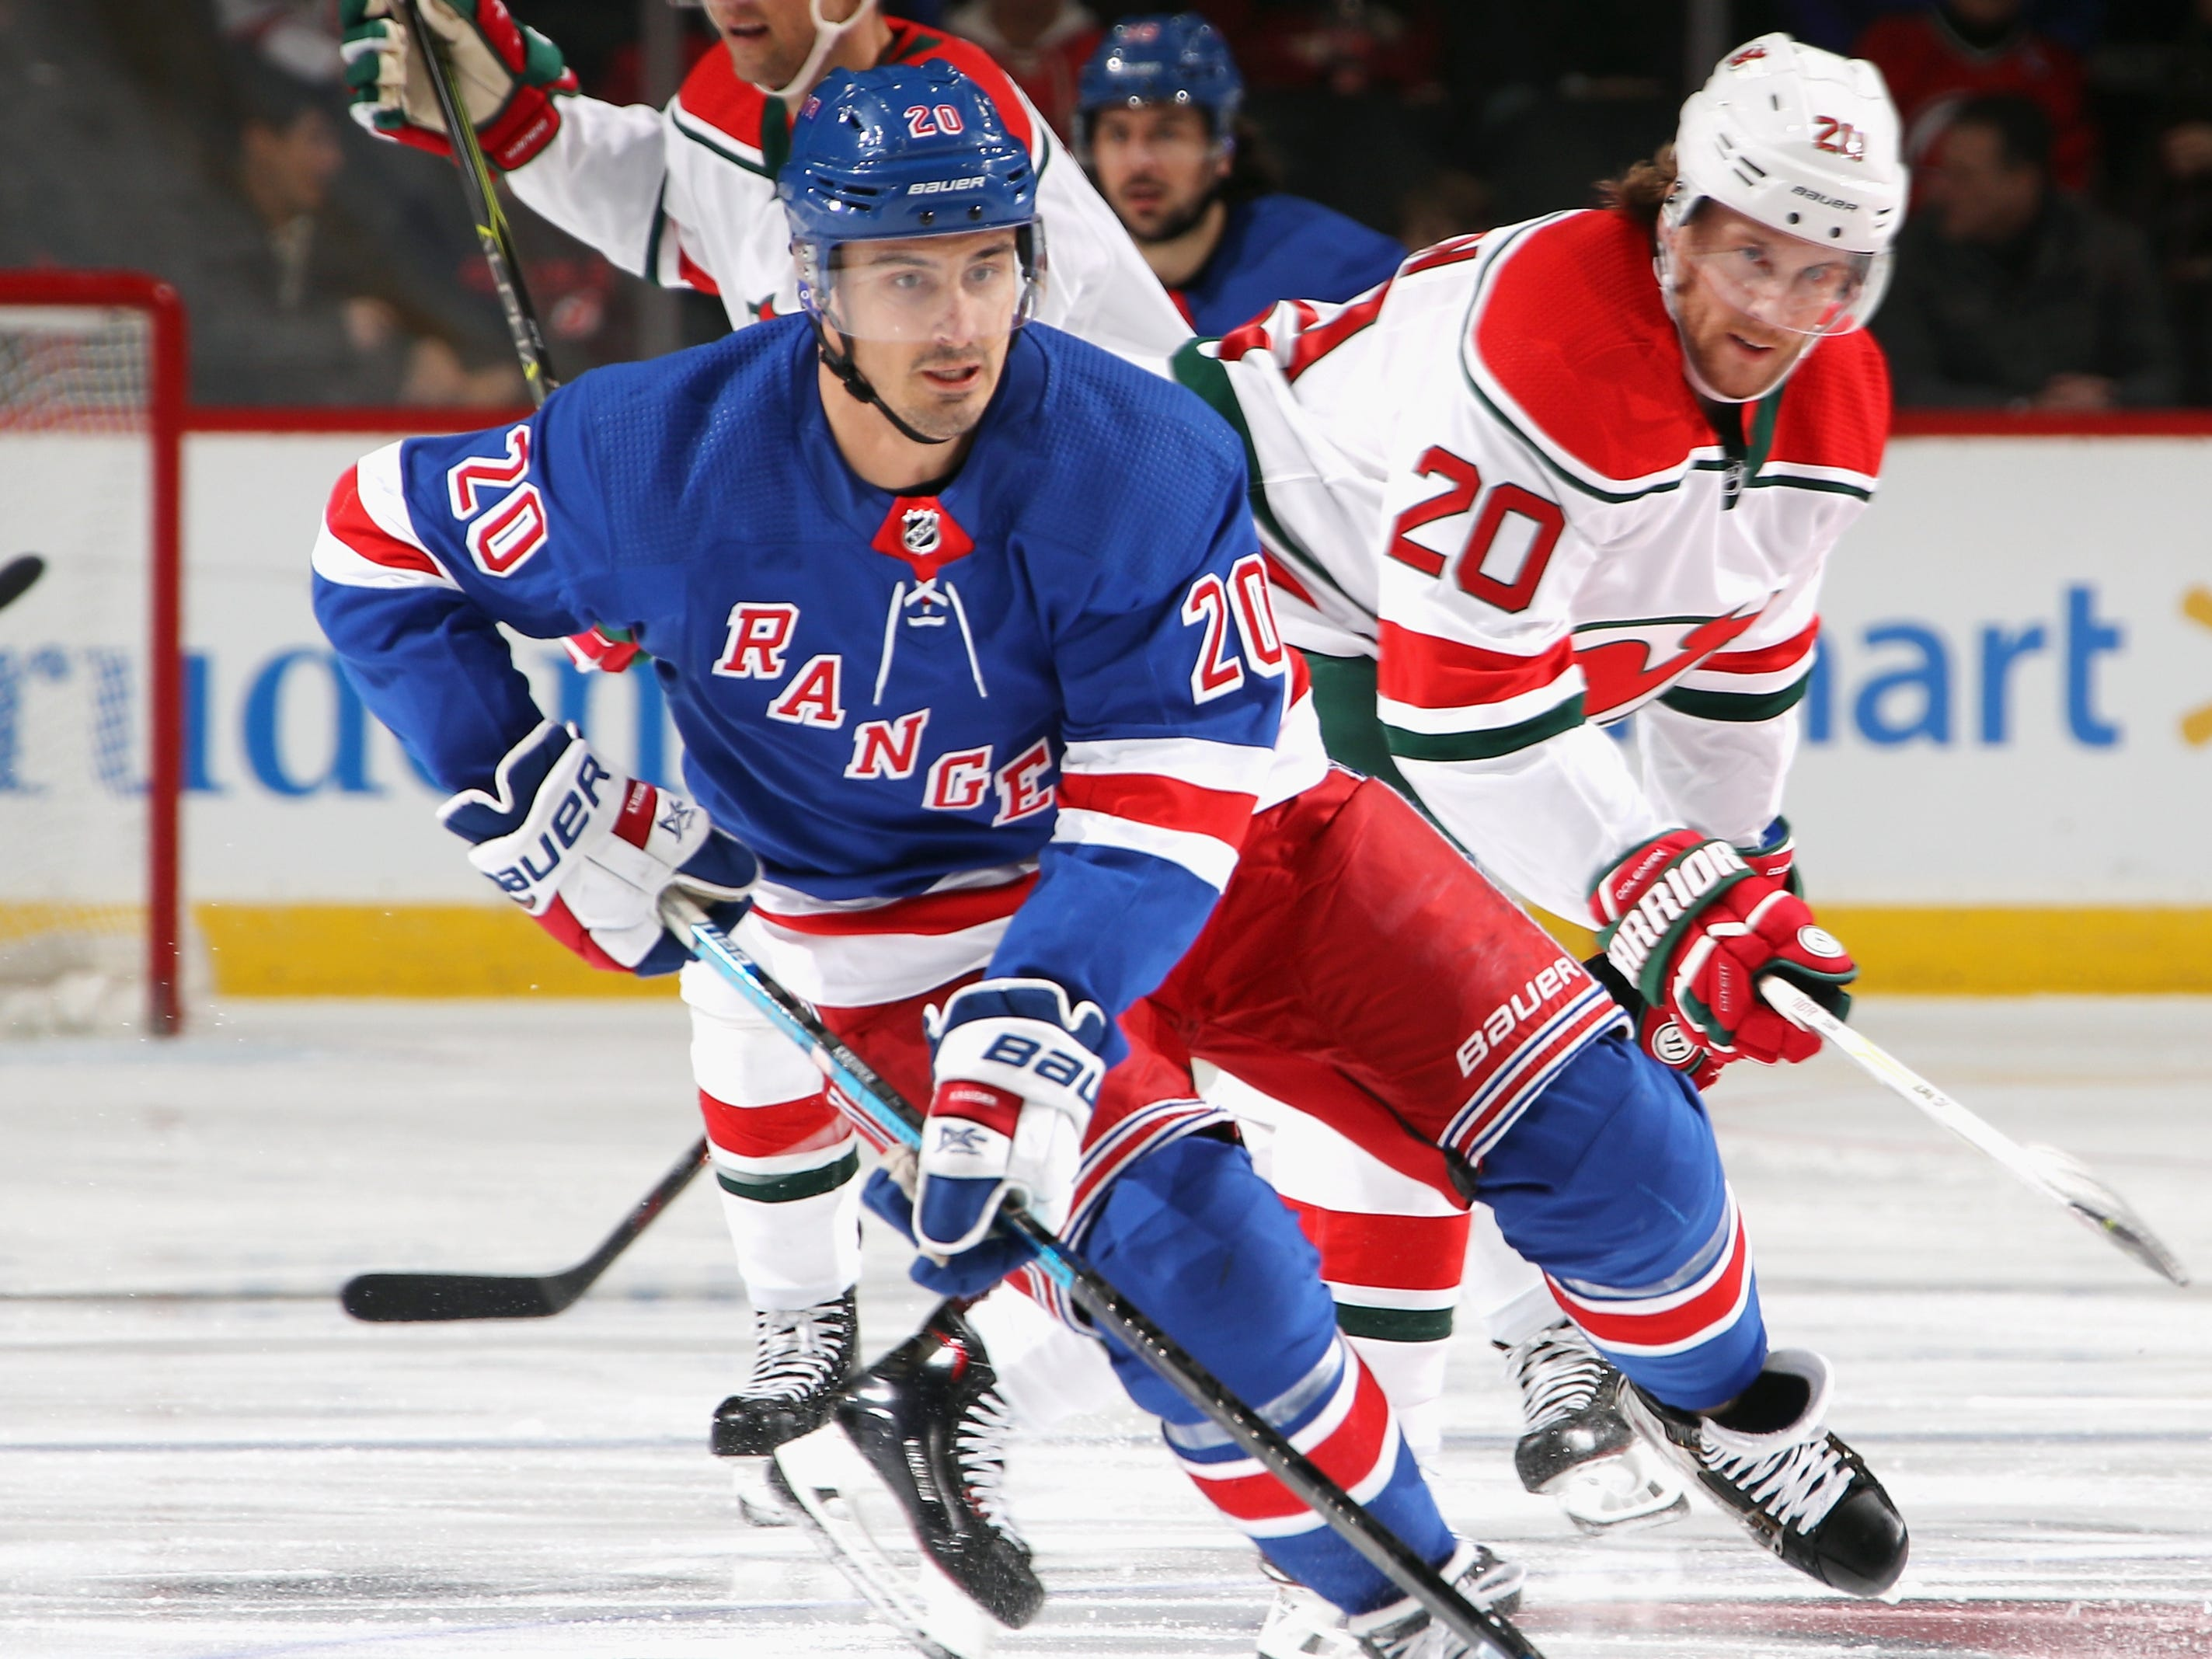 7. Chris Kreider, LW, N.Y. Rangers:  Kreider is a year away from free agency, so the Rangers don't need to trade Kreider. But they'll get plenty of calls for this versatile power forward.